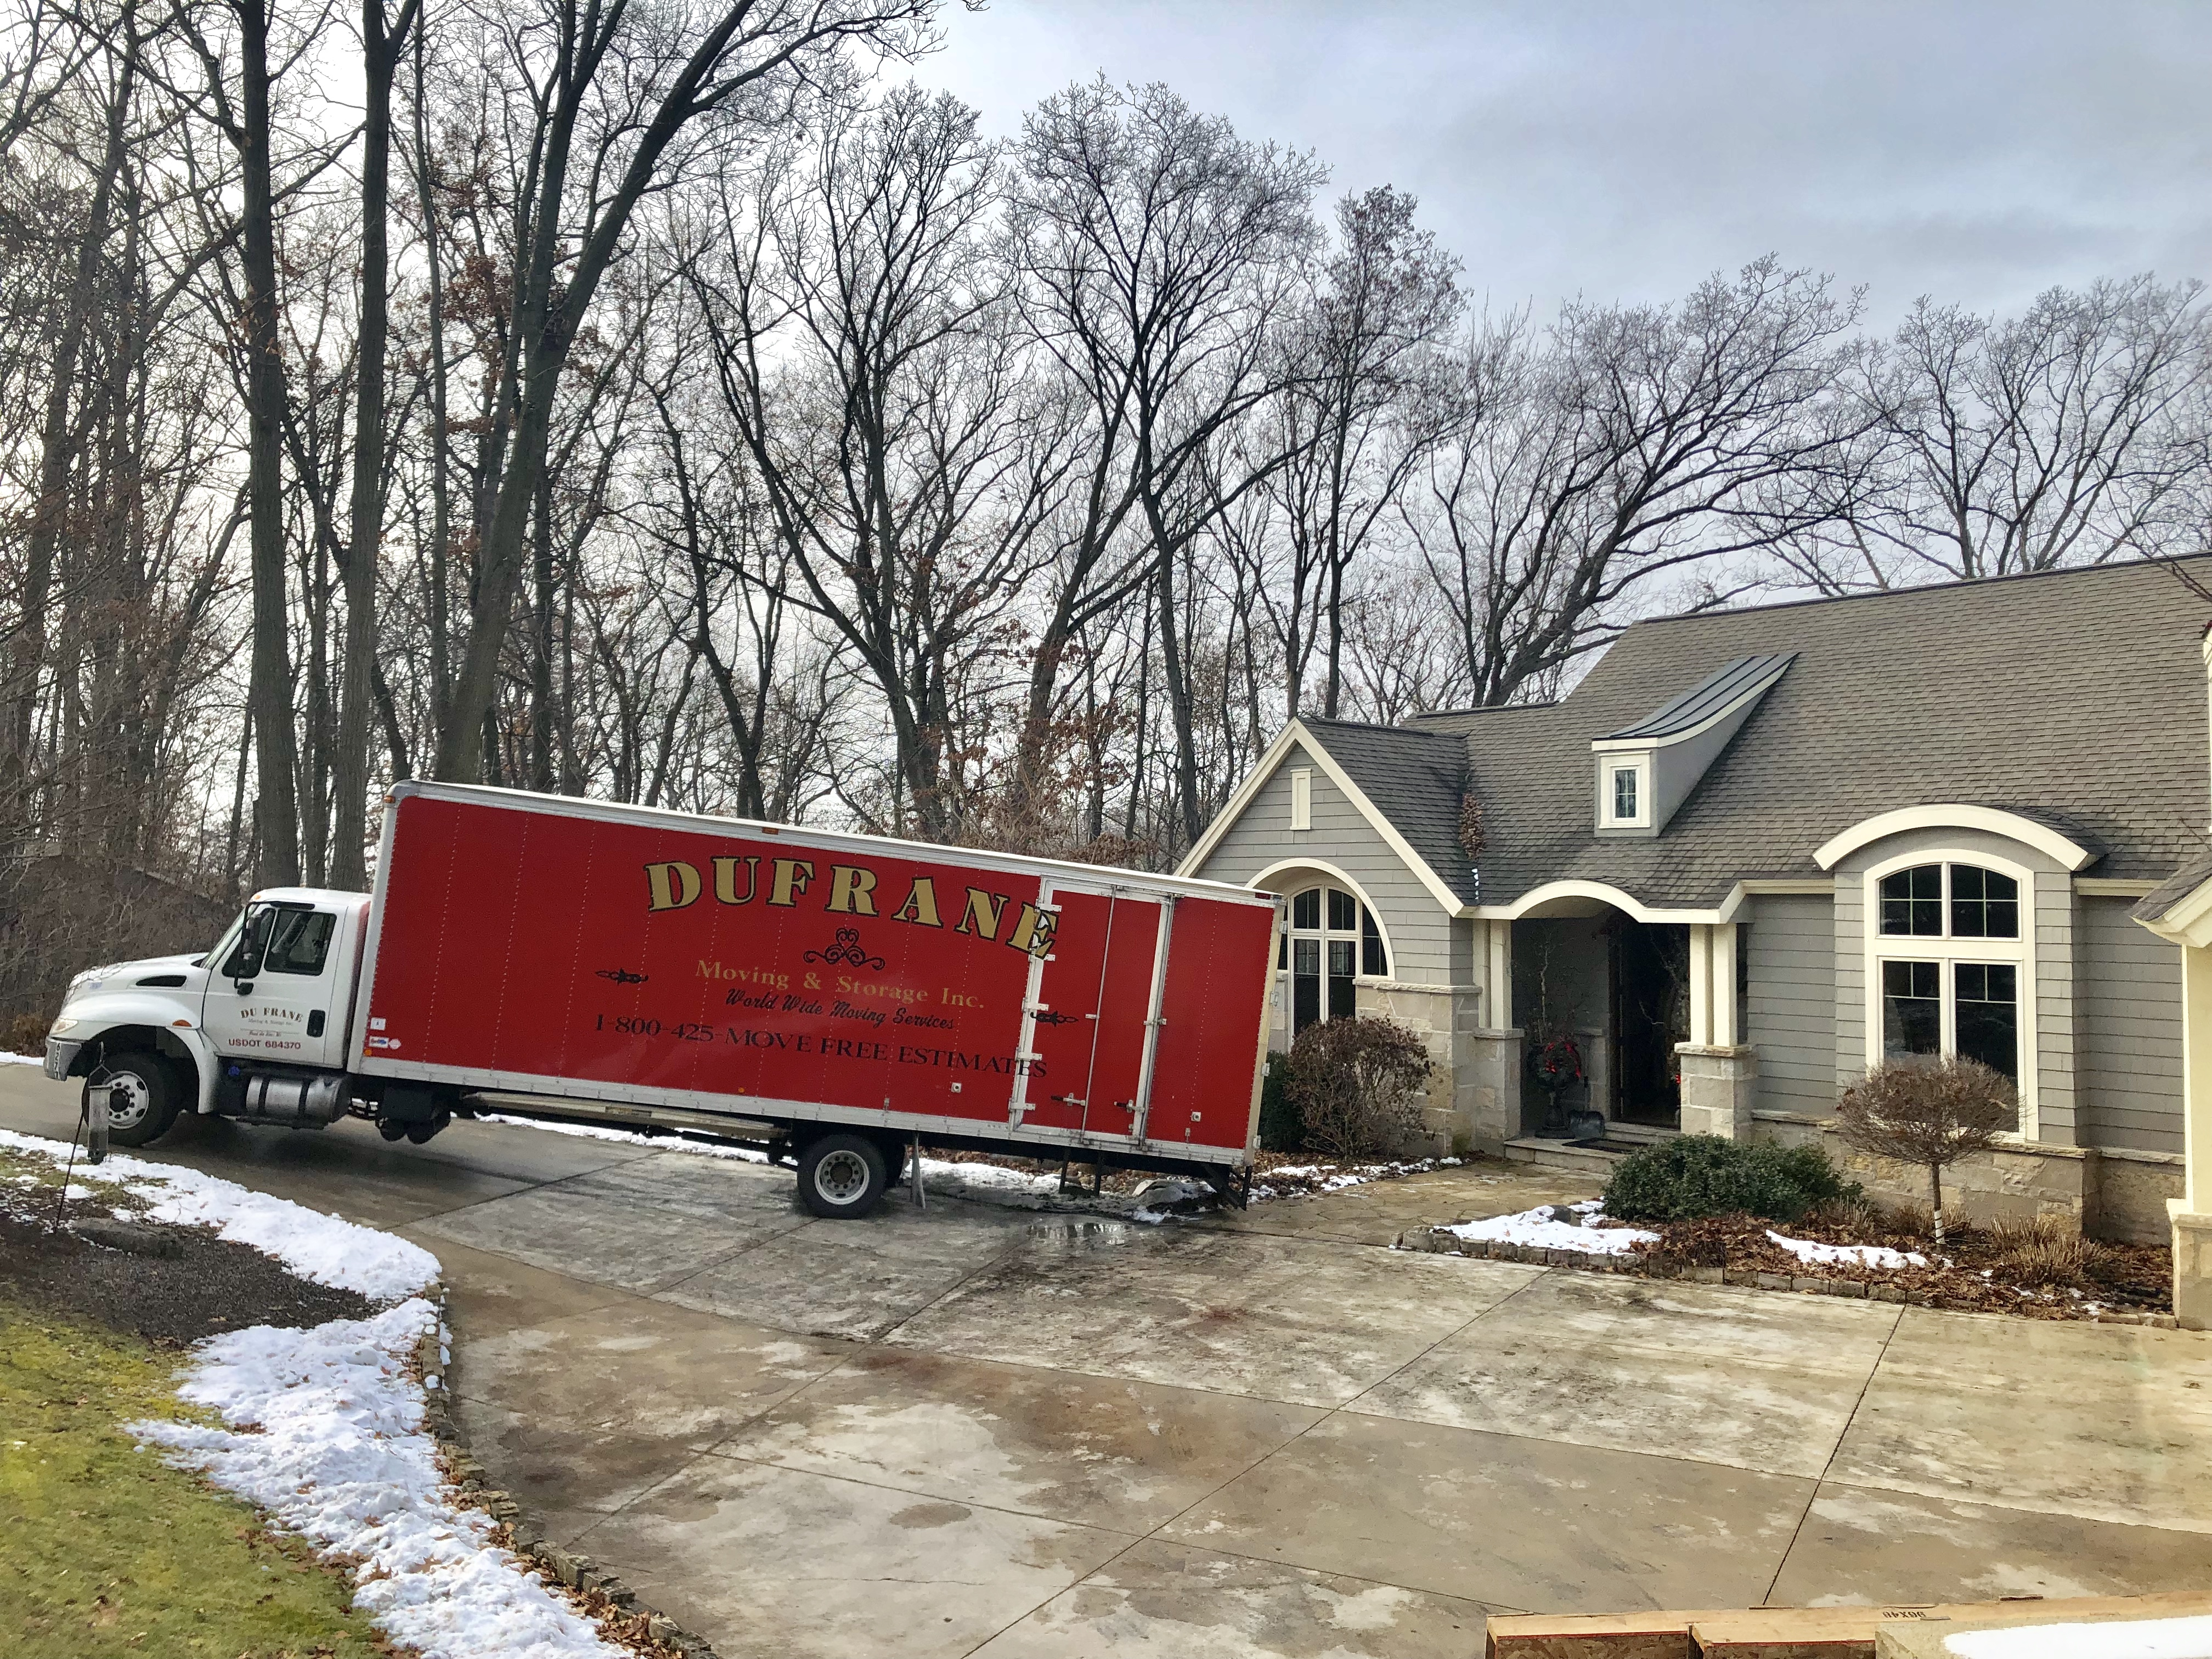 dufrane moving & storage - your local moving company